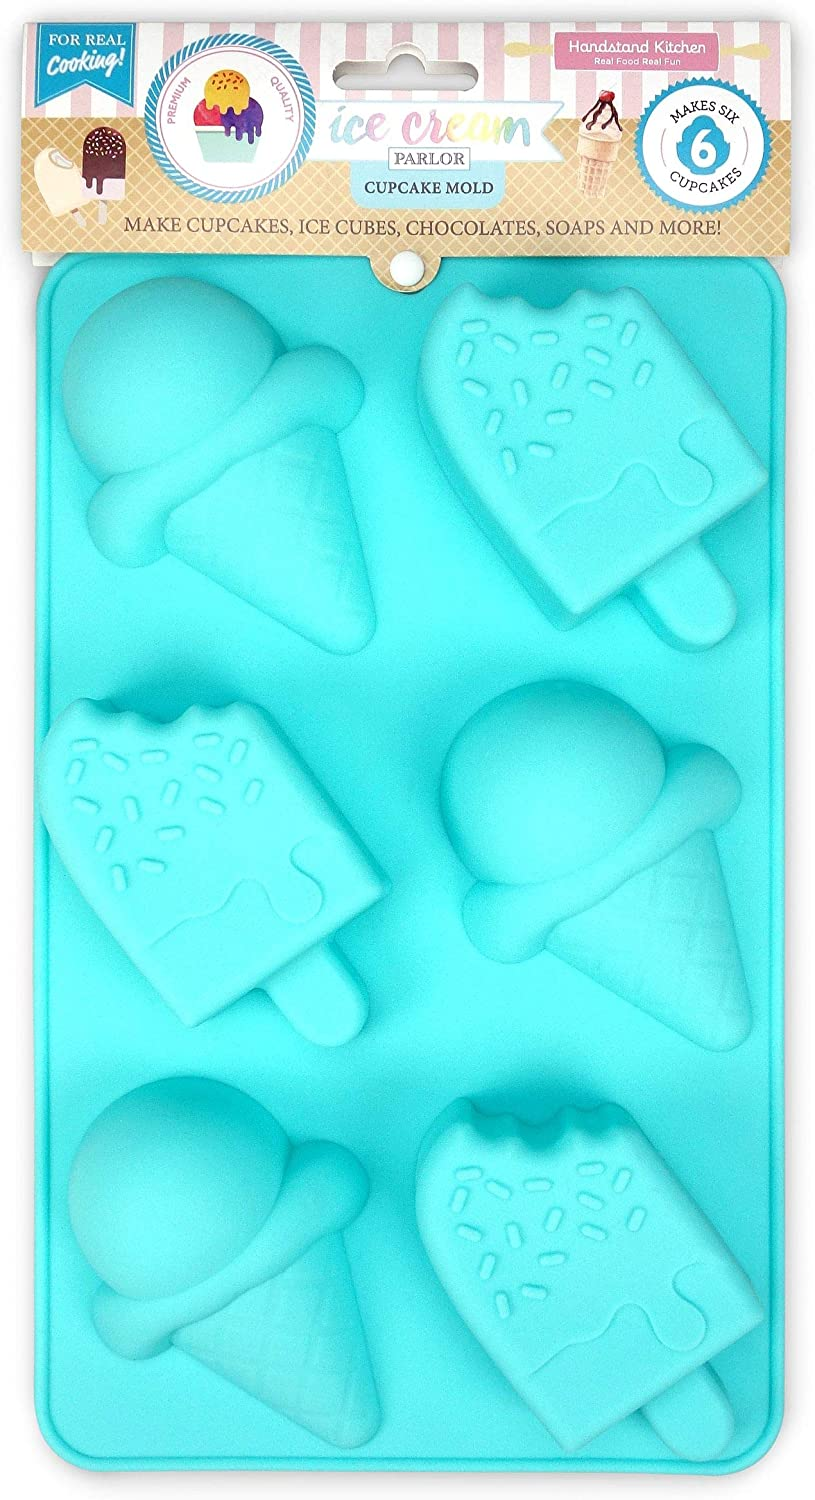 Handstand Kitchen Ice Cream Parlor Silicone Cone and Pop Shaped Cupcake Mold